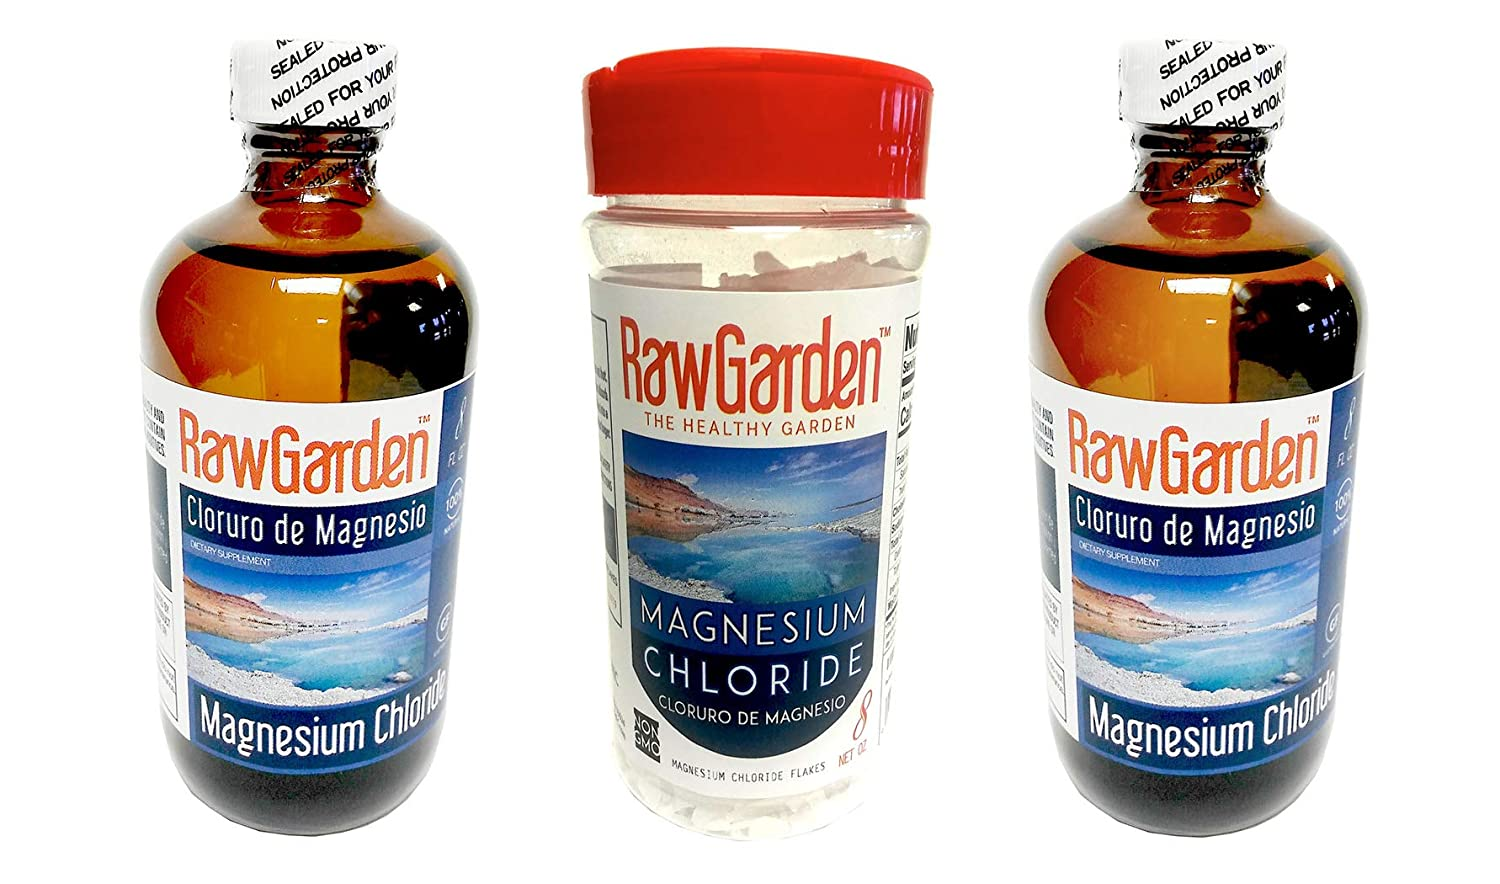 Amazon.com : Raw Garden Magnesium Chloride Liquid 8 oz. Cloruro de Magnesio. Glass bottle. : Grocery & Gourmet Food